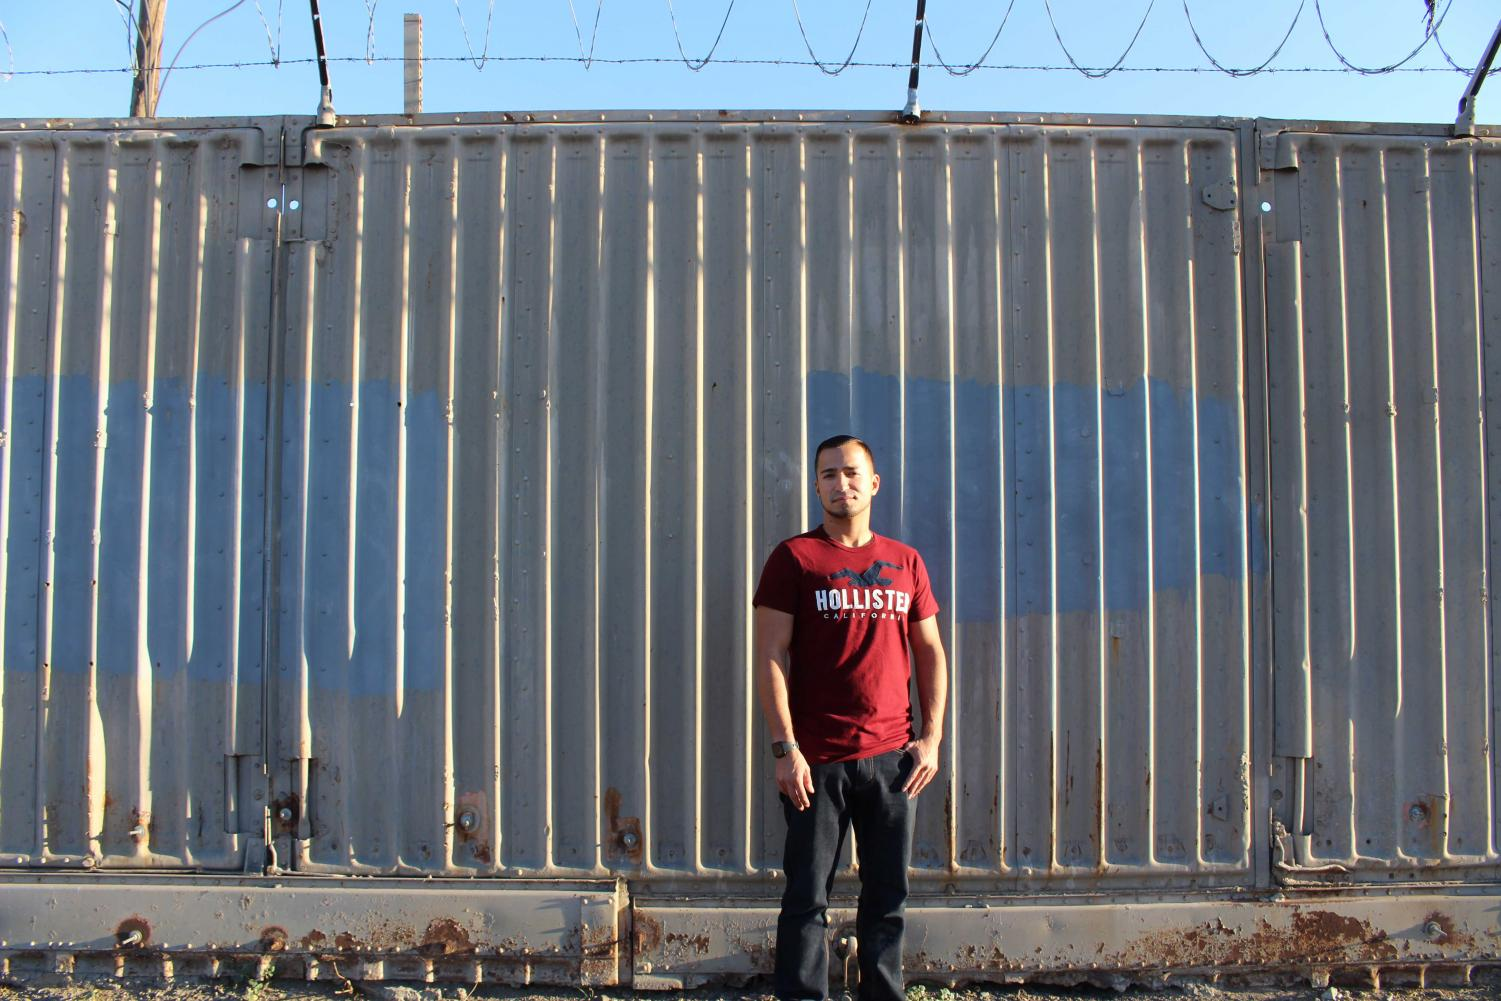 Matt Luna became chronically homeless at 27, but is now realigning his life by working and studying.